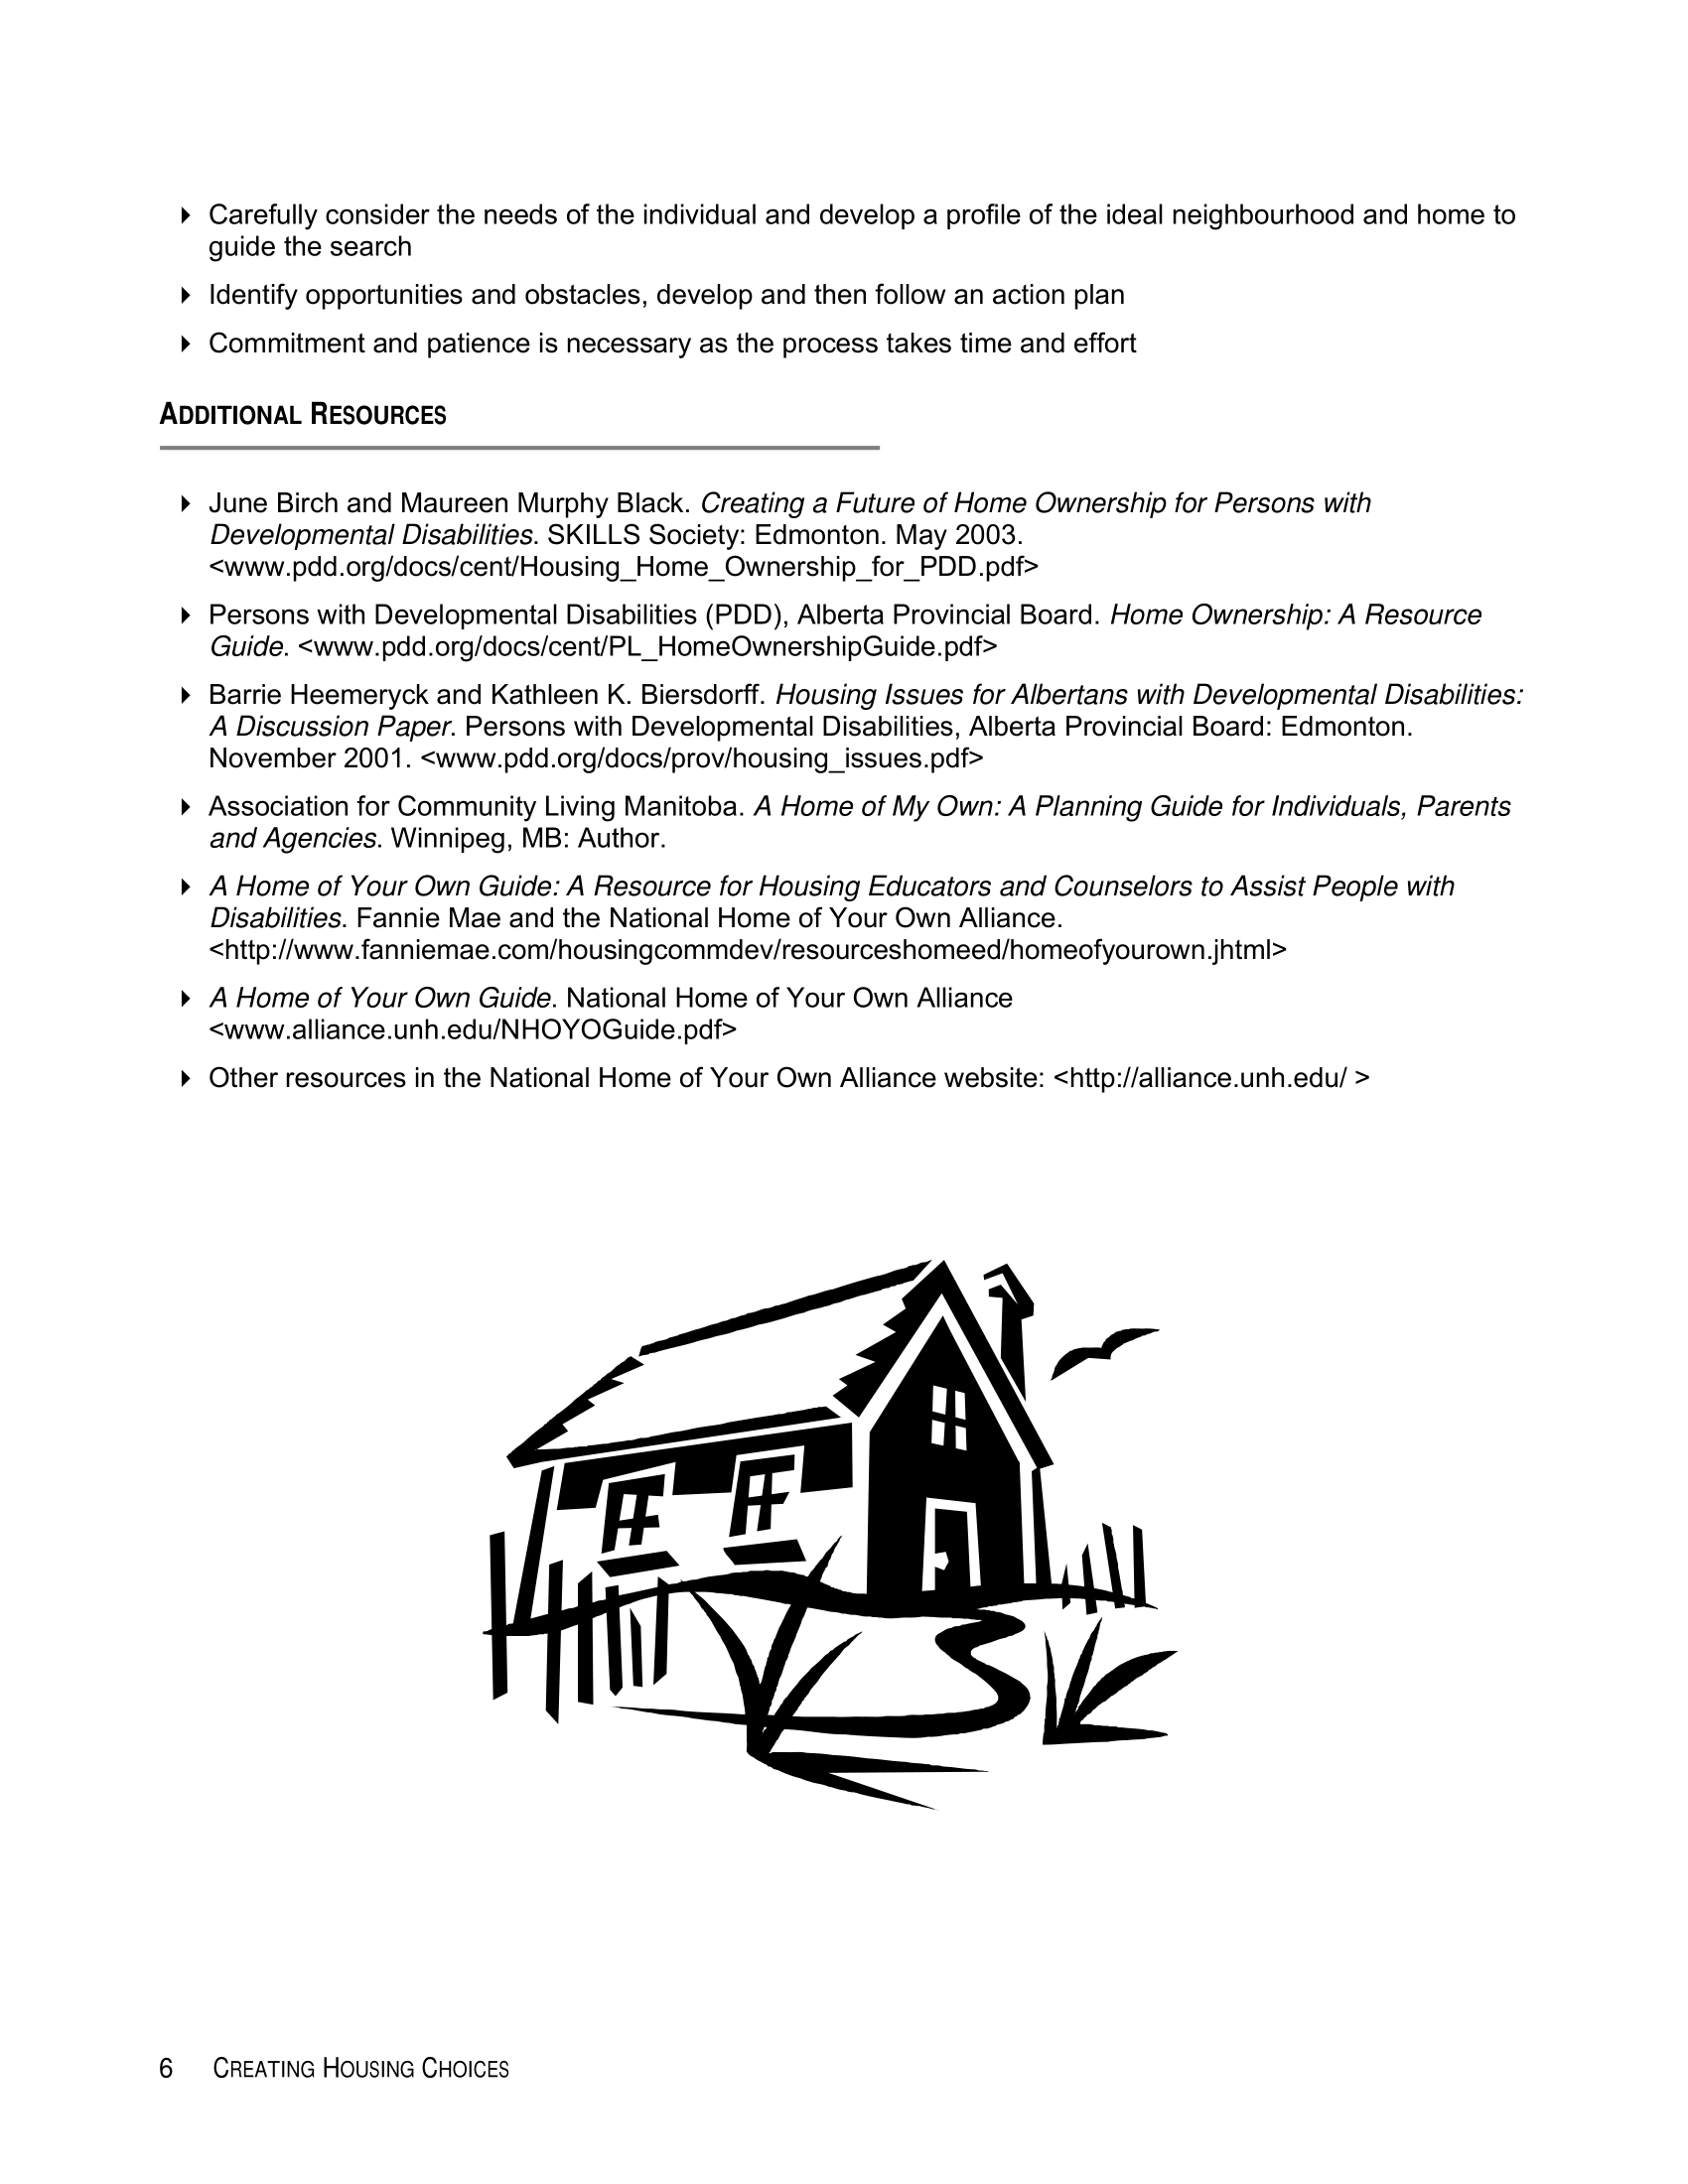 Creating Housing Choices - 2006-07.png